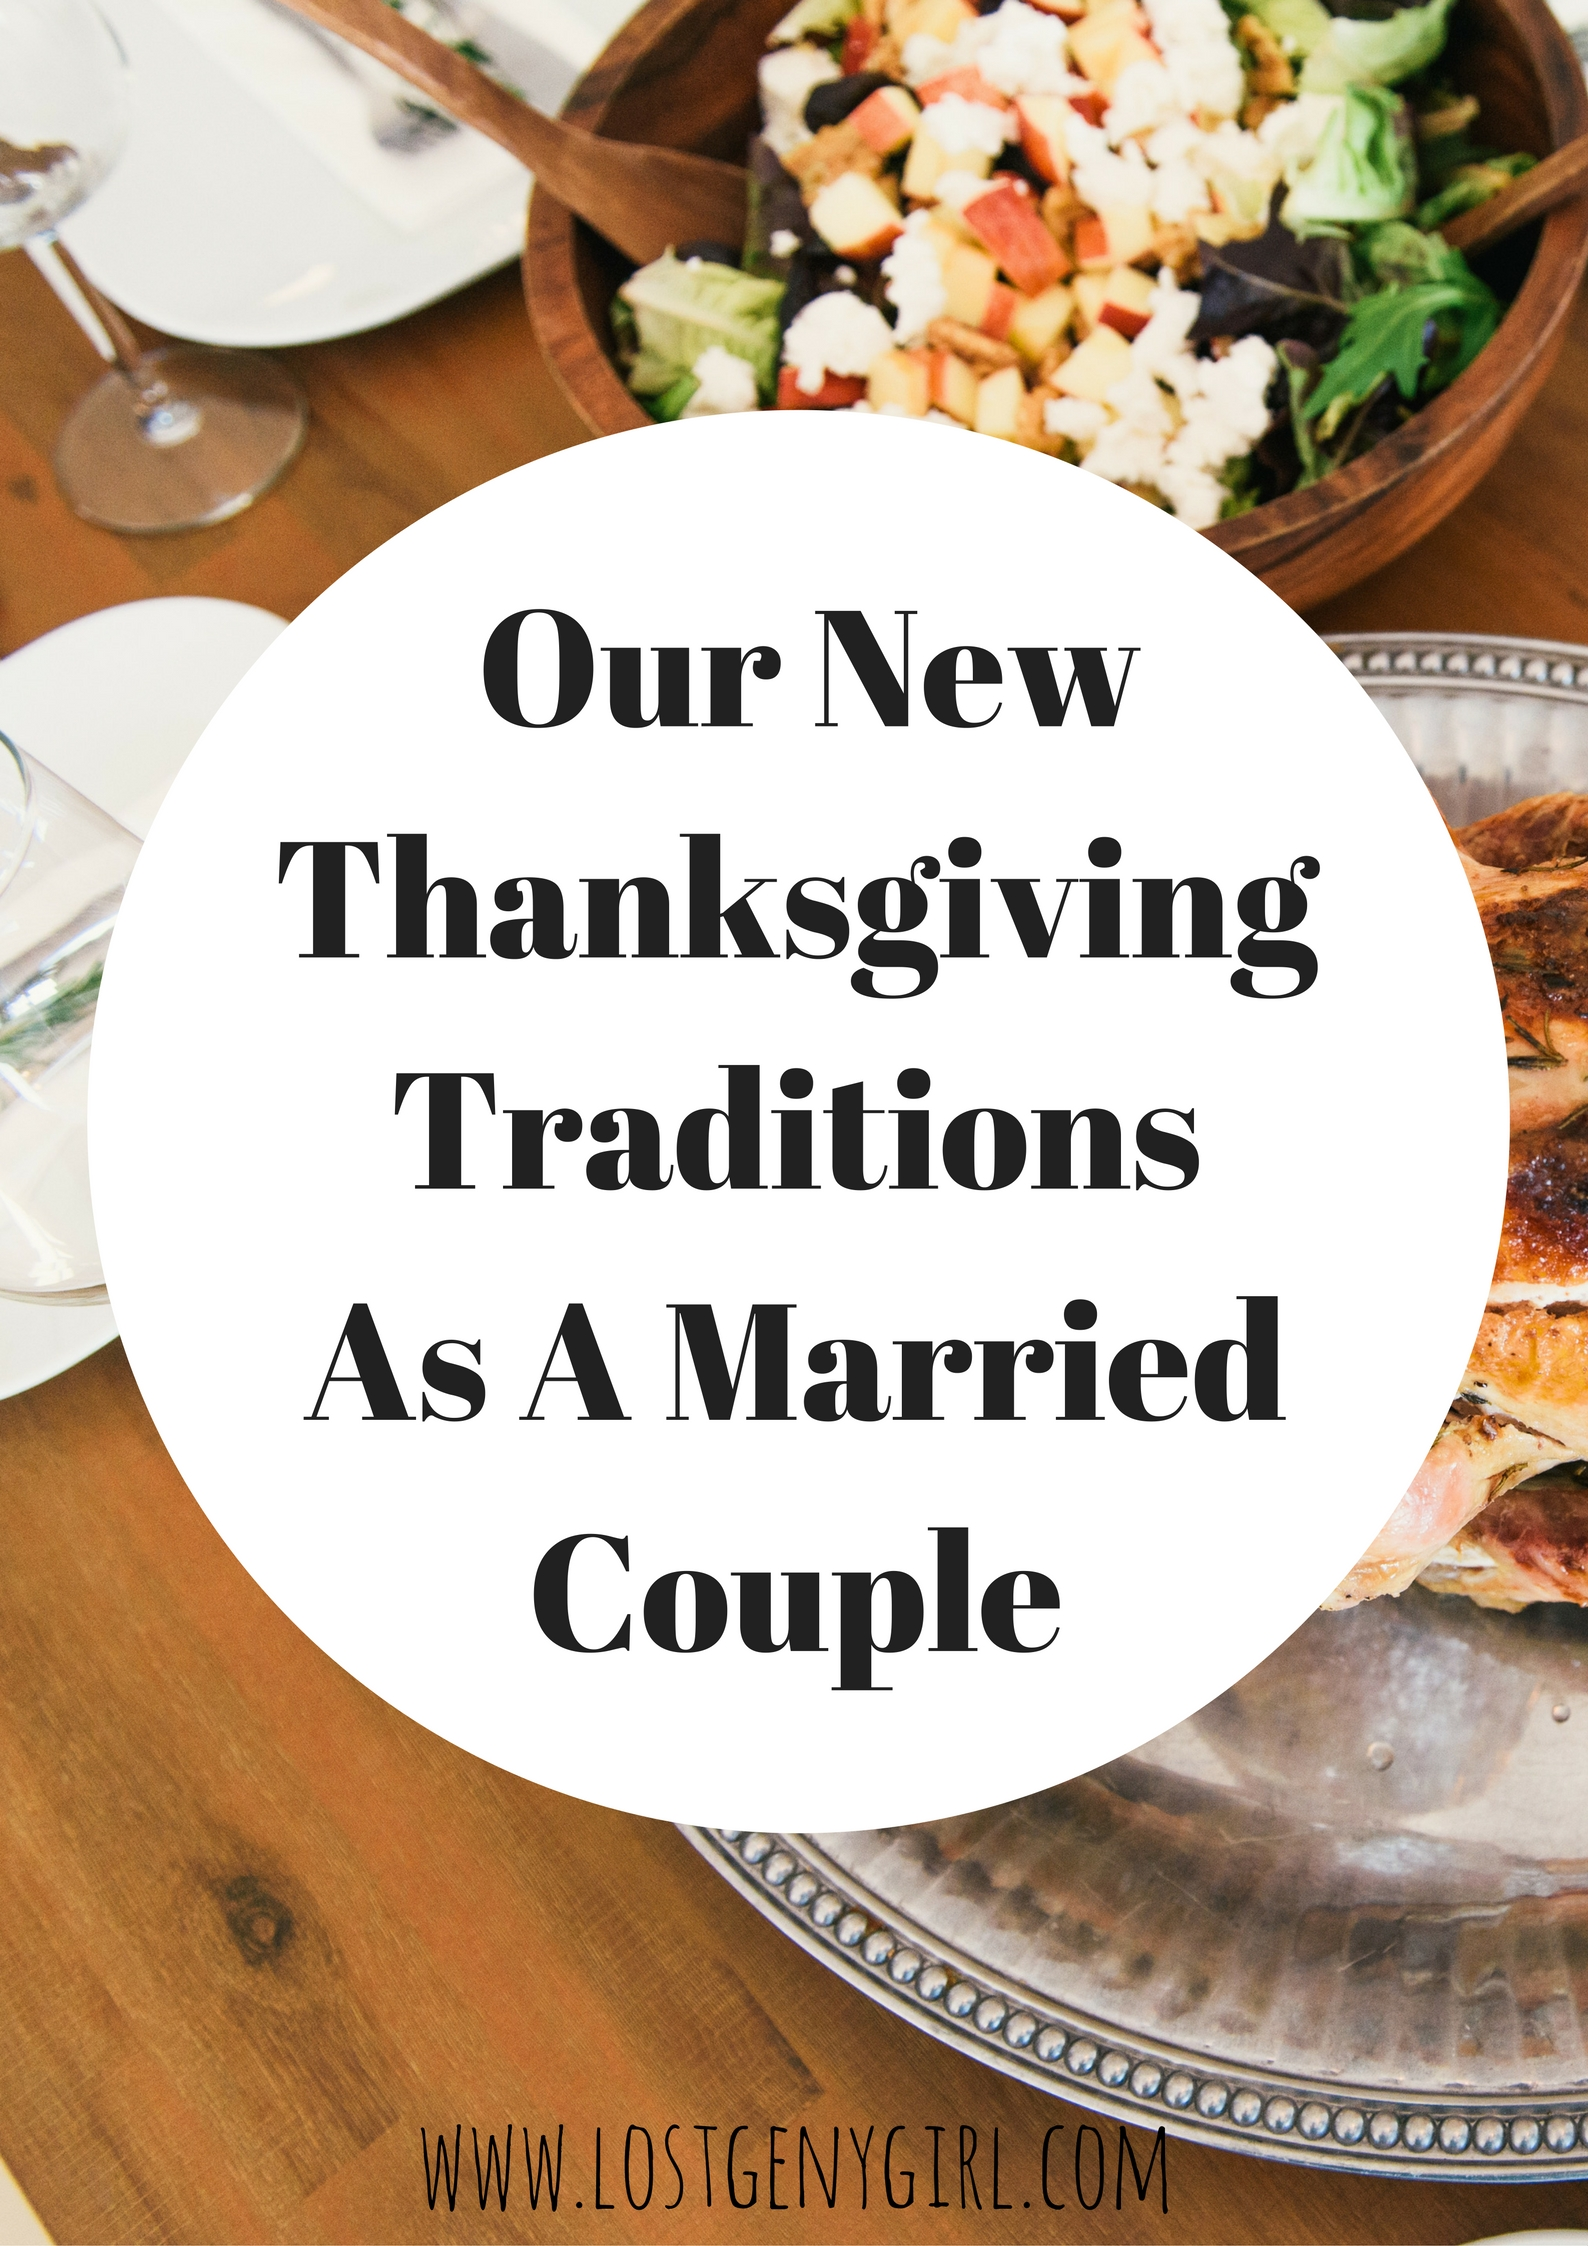 Our New Thanksgiving Traditions As A Married Couple